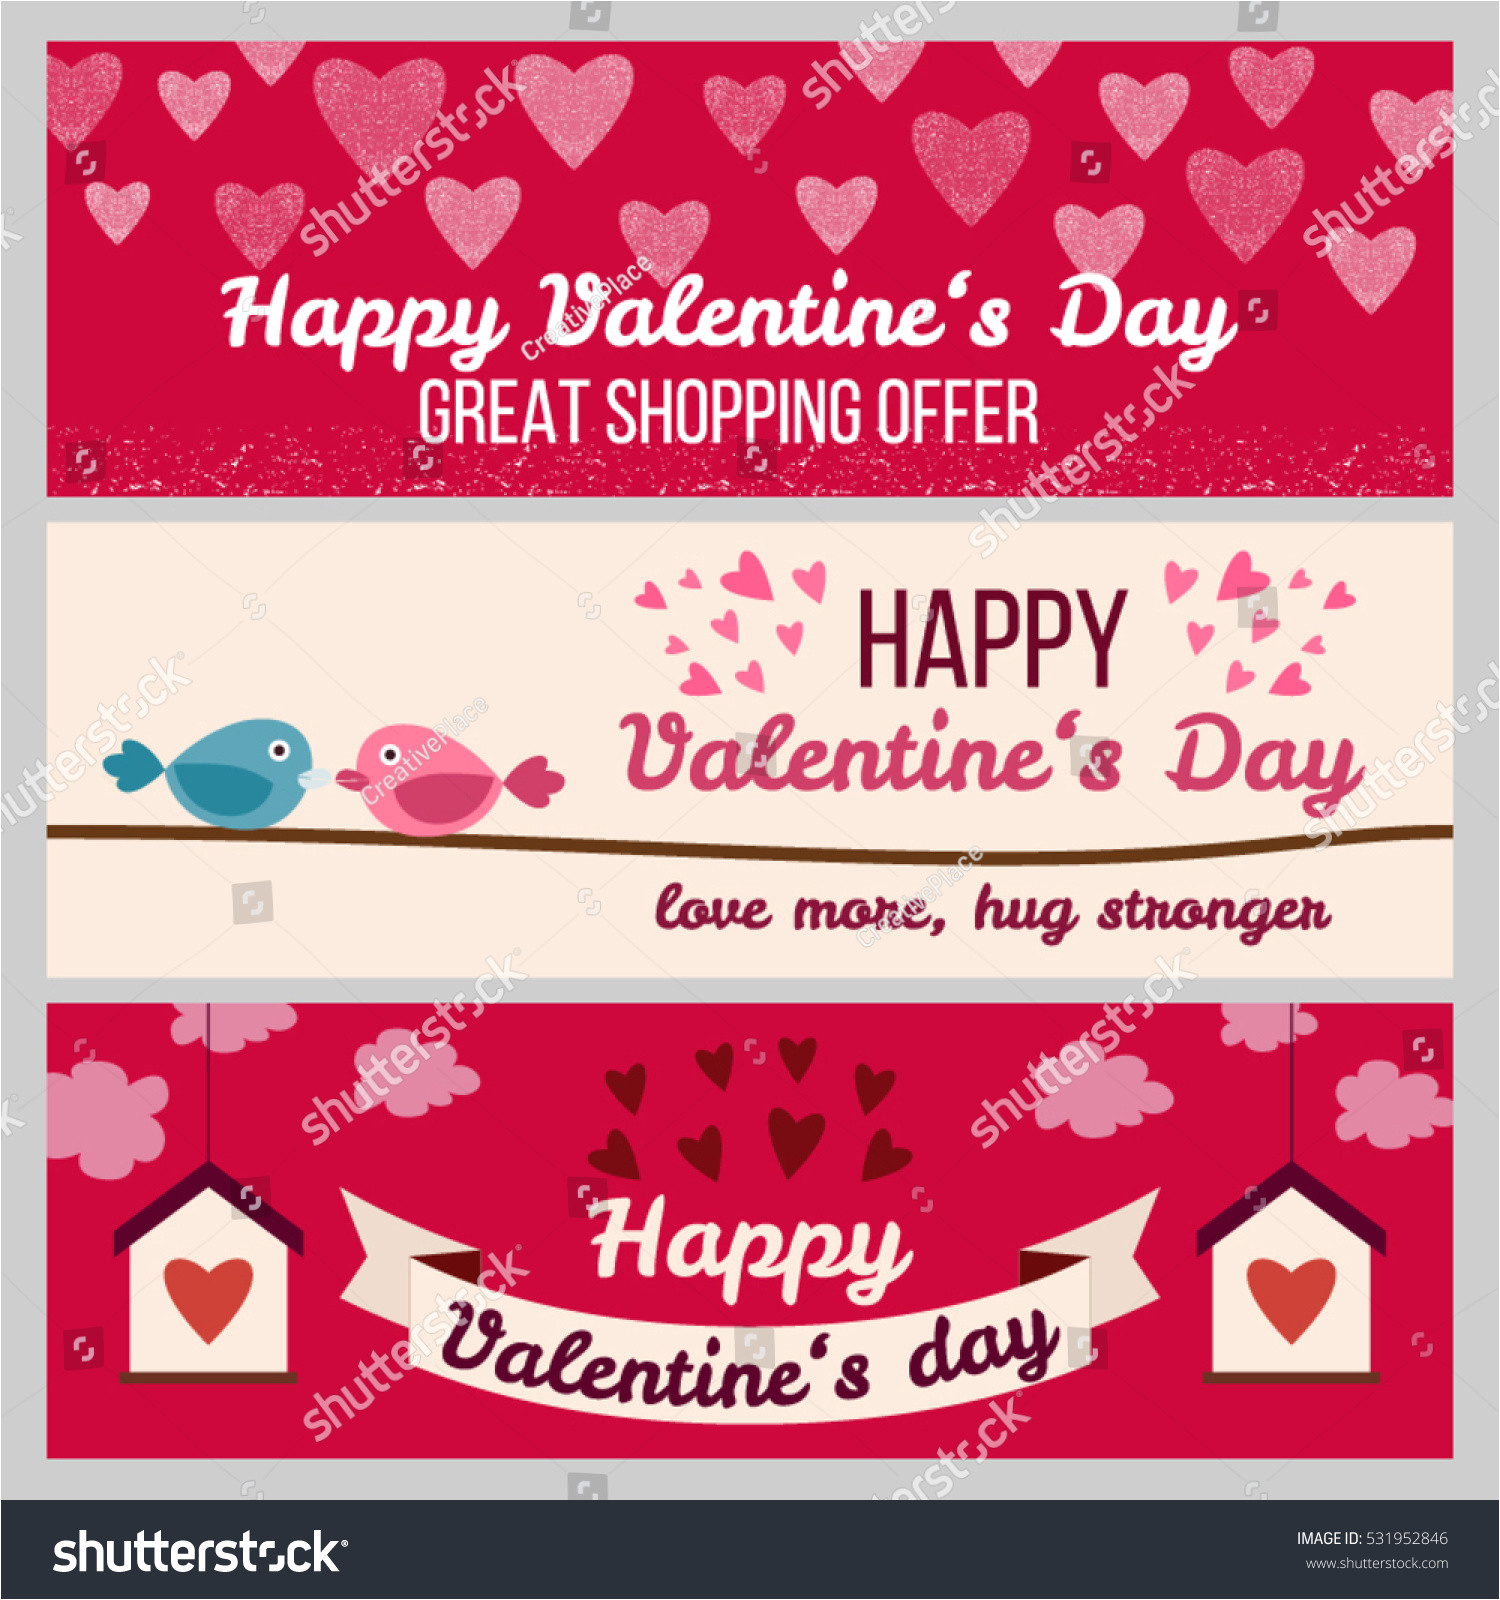 stock vector set od modern flat valentine s day greetings cards banners vouchers and sale promotion flyers cards 531952846 jpg